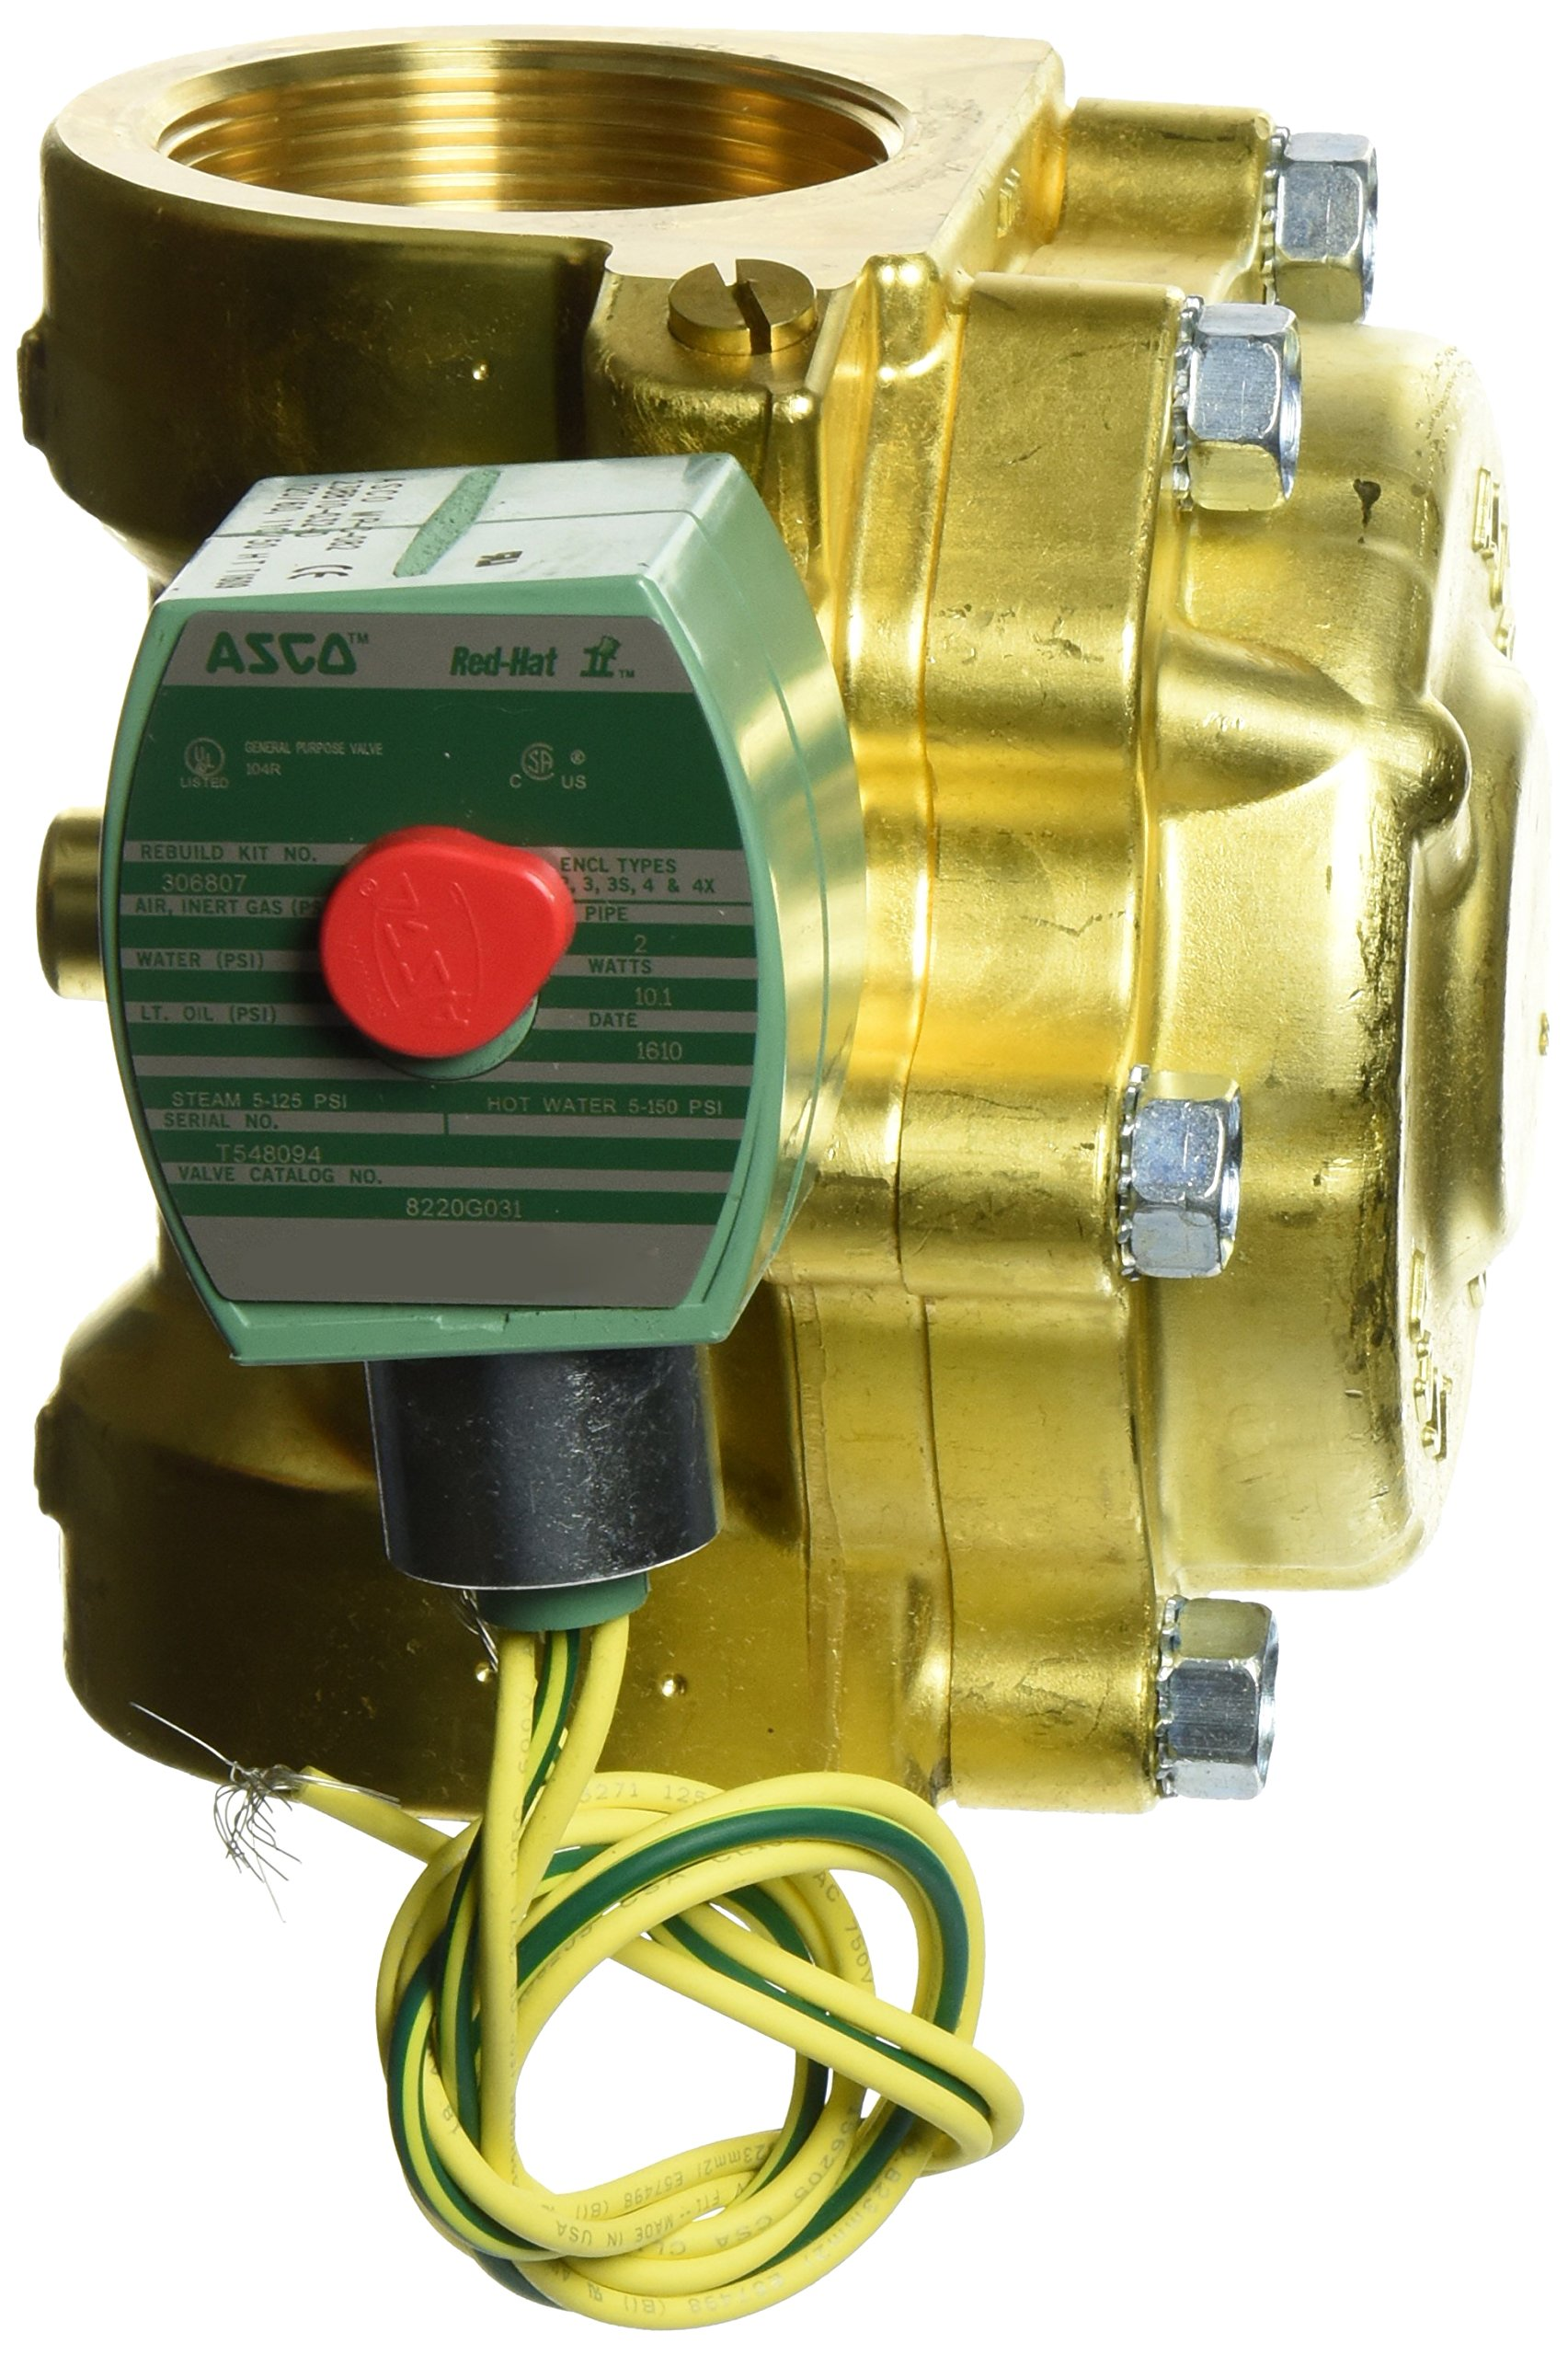 ASCO 8220G031 -120/60,110/50 Brass Body Hot Water and Steam Pilot Operated Diaphragm and Piston Valve, 2'' Pipe Size, 2-Way Normally Closed, PTFE Sealing, 1-3/4'' Orifice, 43 Cv Flow 120V/60 Hz, 110V/50 by Asco (Image #2)